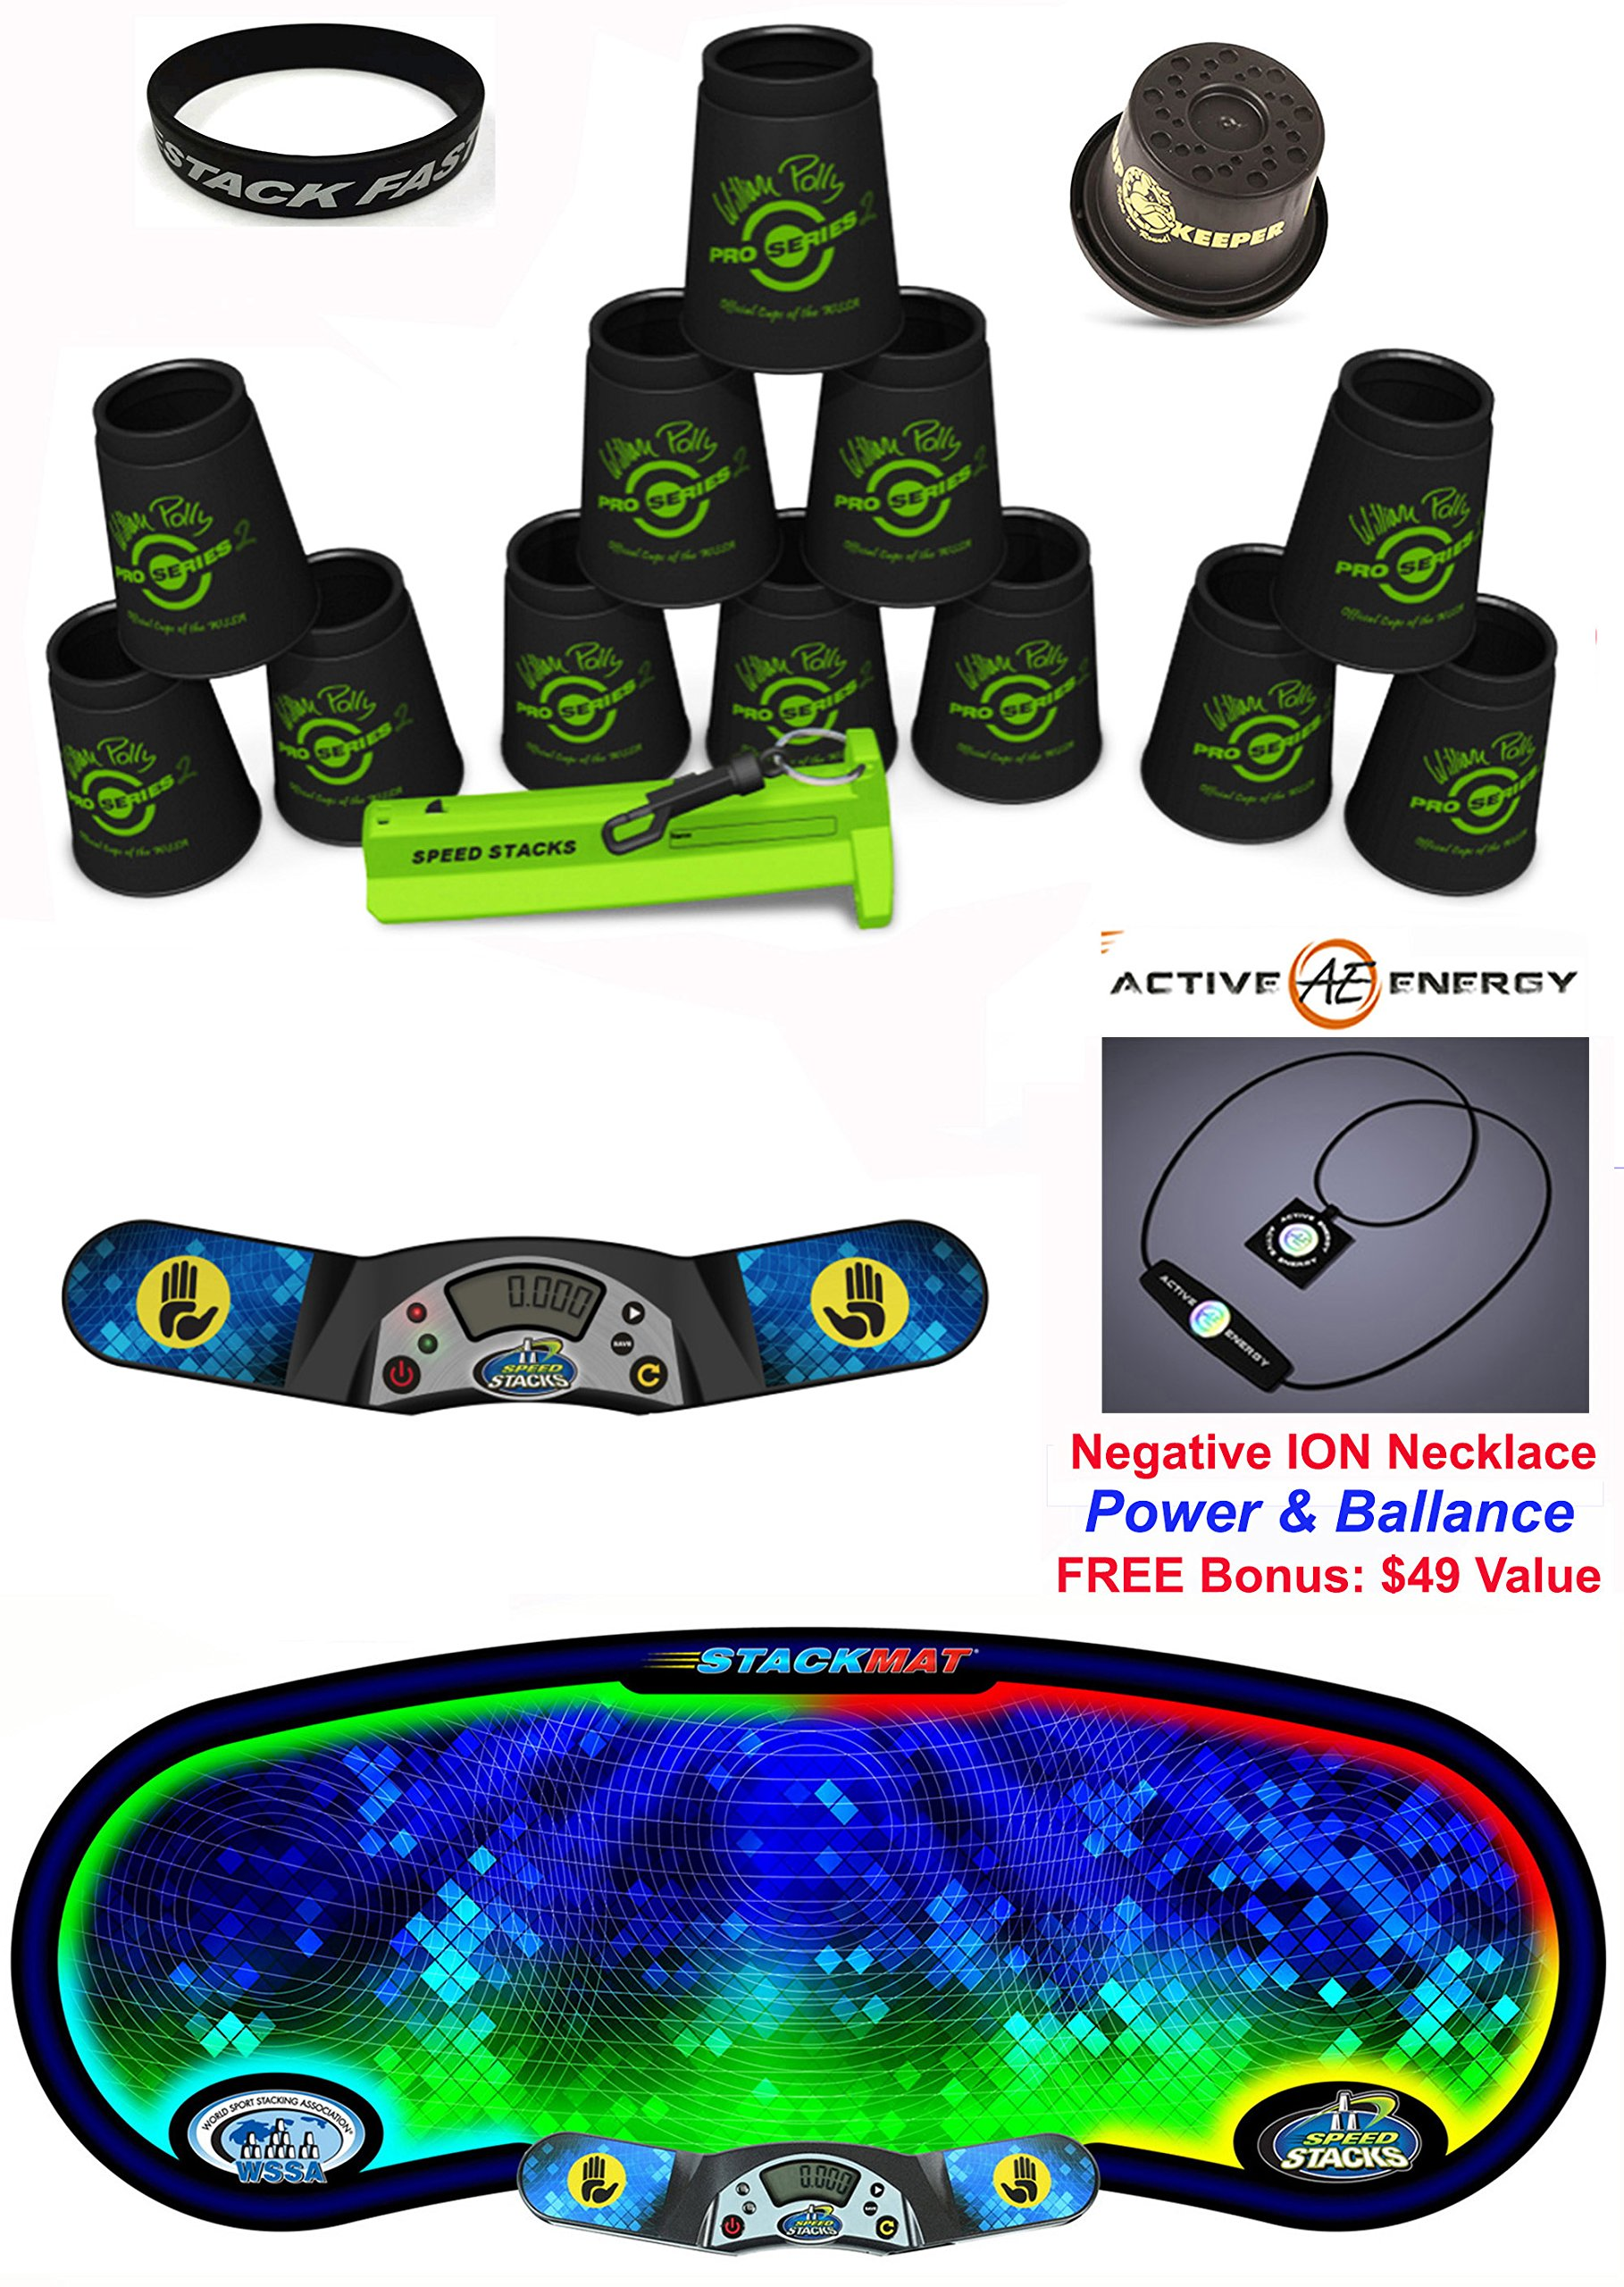 Speed Stacks Custom Combo Set: 12 PRO Series BLACK 4'' Cups, Cup Keeper, Quick Release Stem, Pro Timer, Gen 3 Mat, ''Stack Fast'' Wristband + FREE Bonus: Active Energy Power & Balance Necklace $49 Value